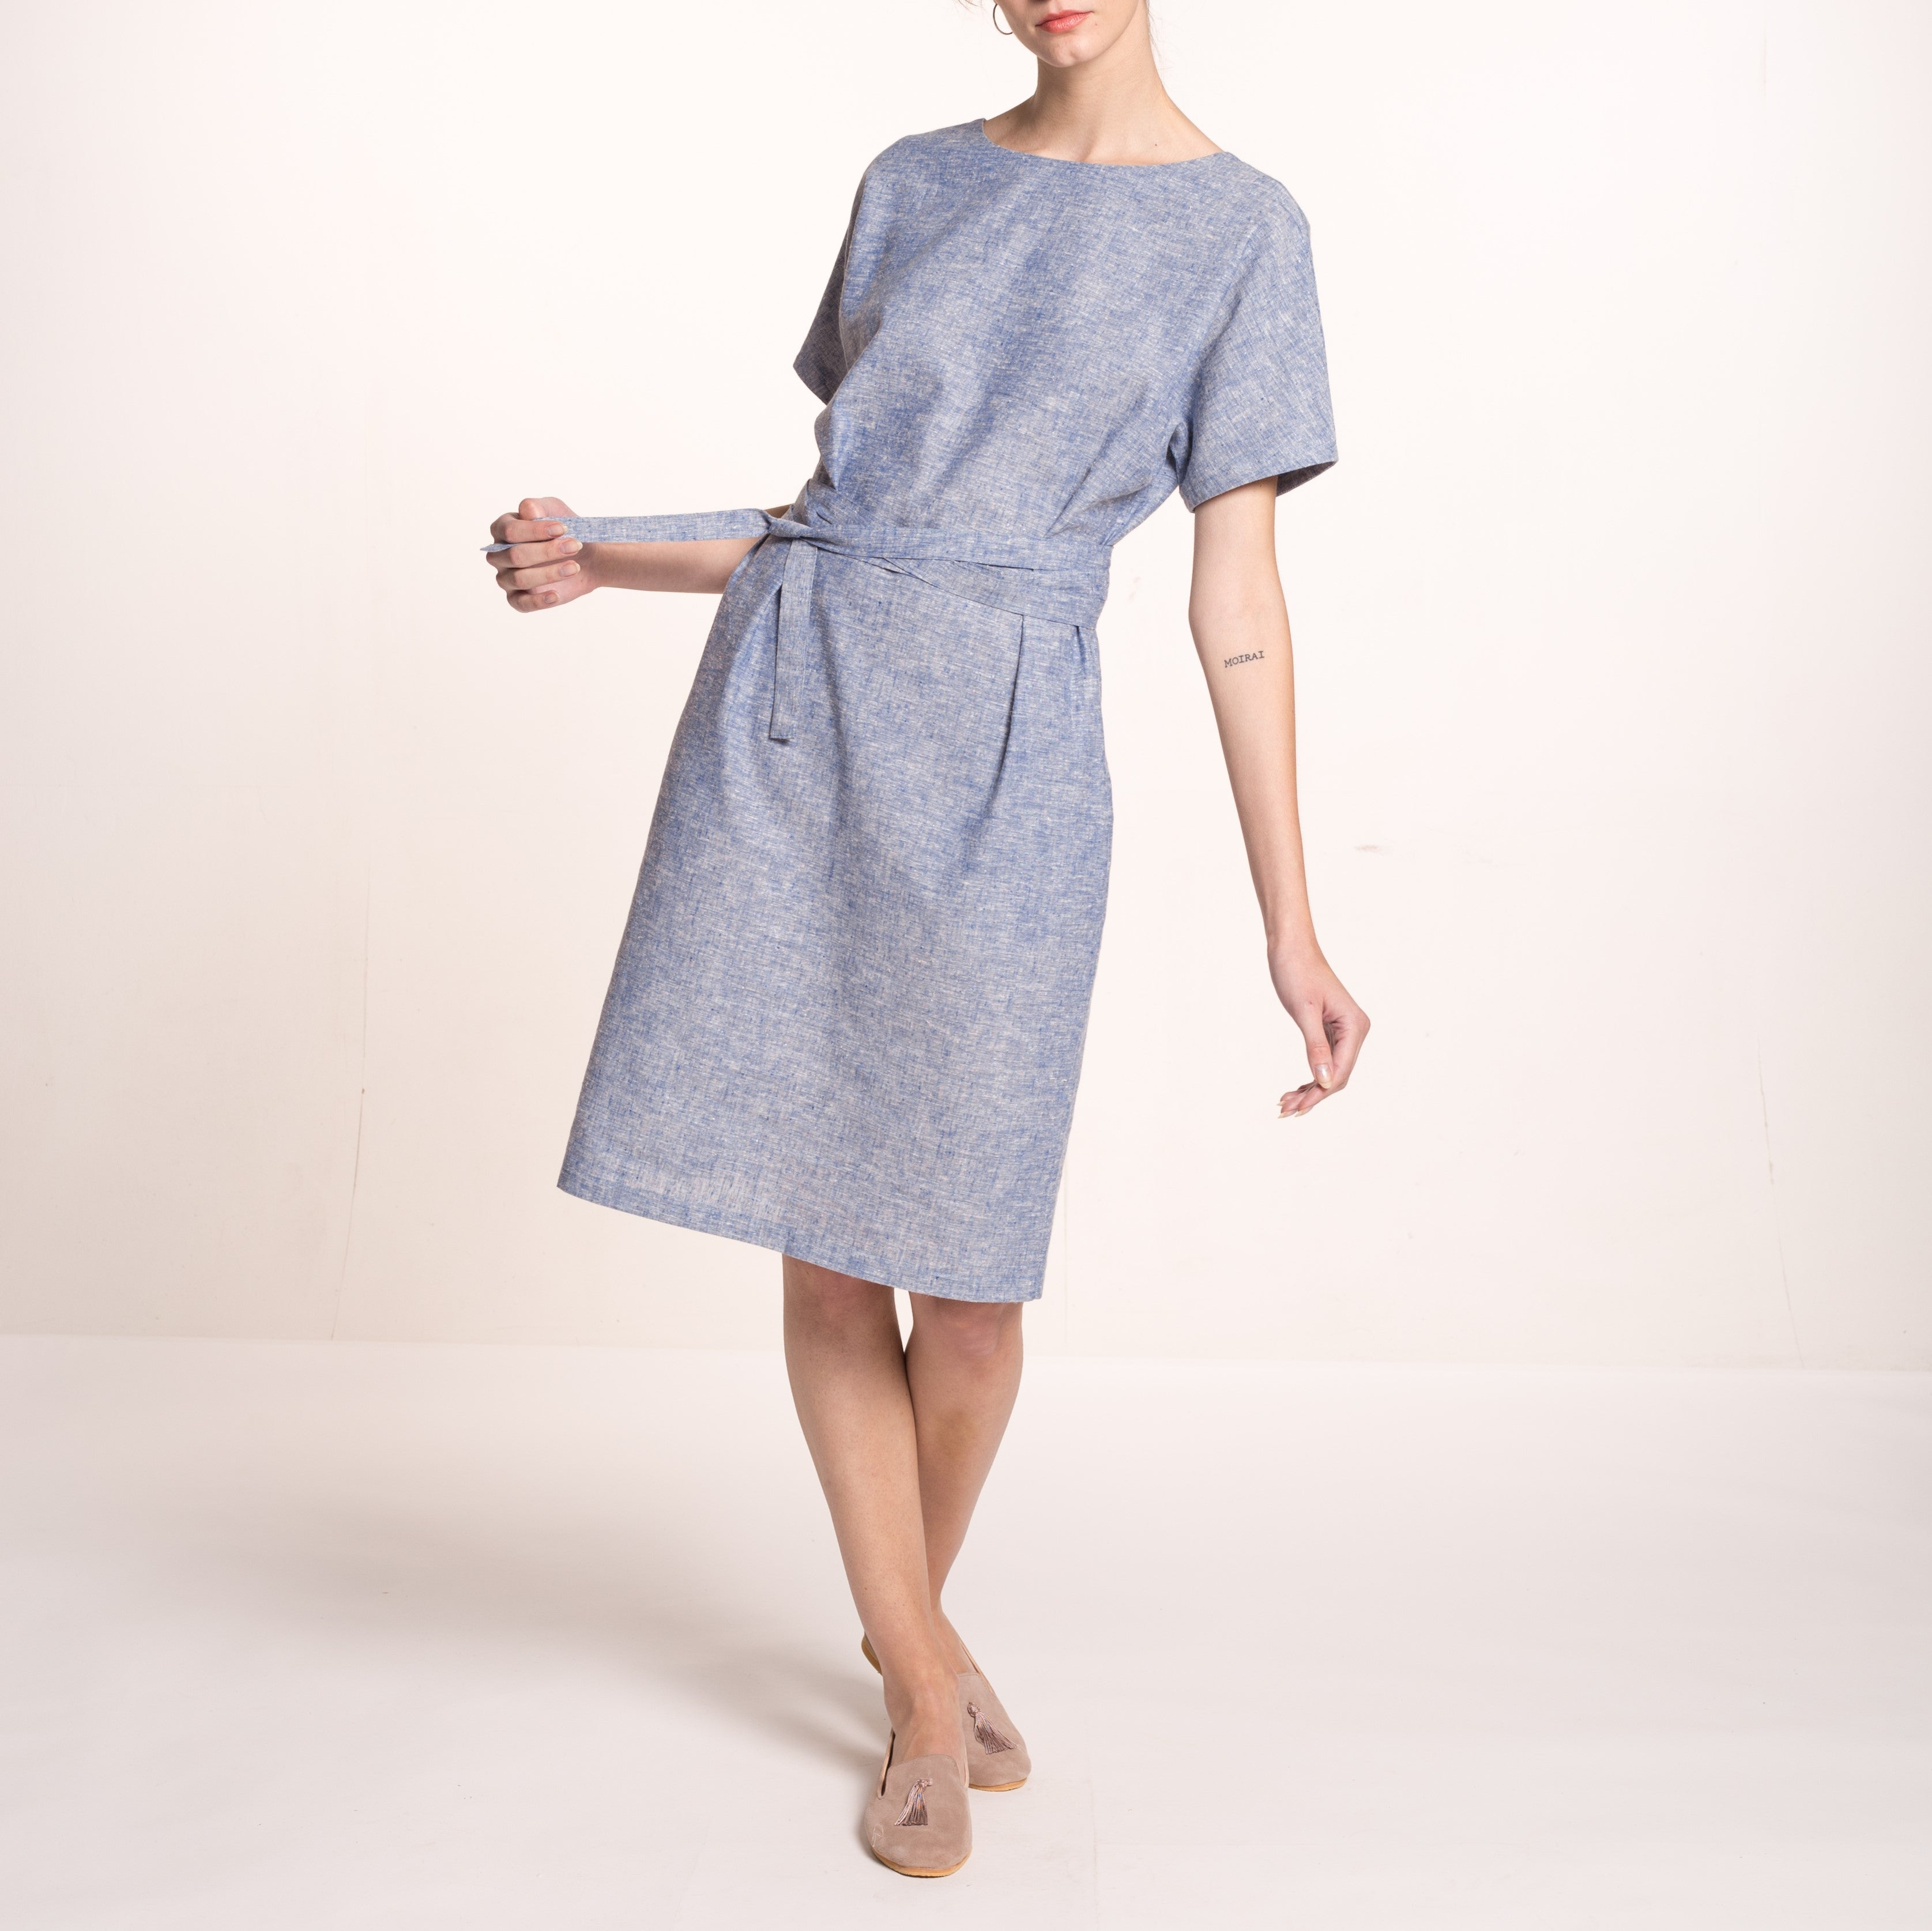 The model wears a light blue, sustainable, organic cotton and hemp dress, with short sleeves and round neckline and a fabric belt, close up.